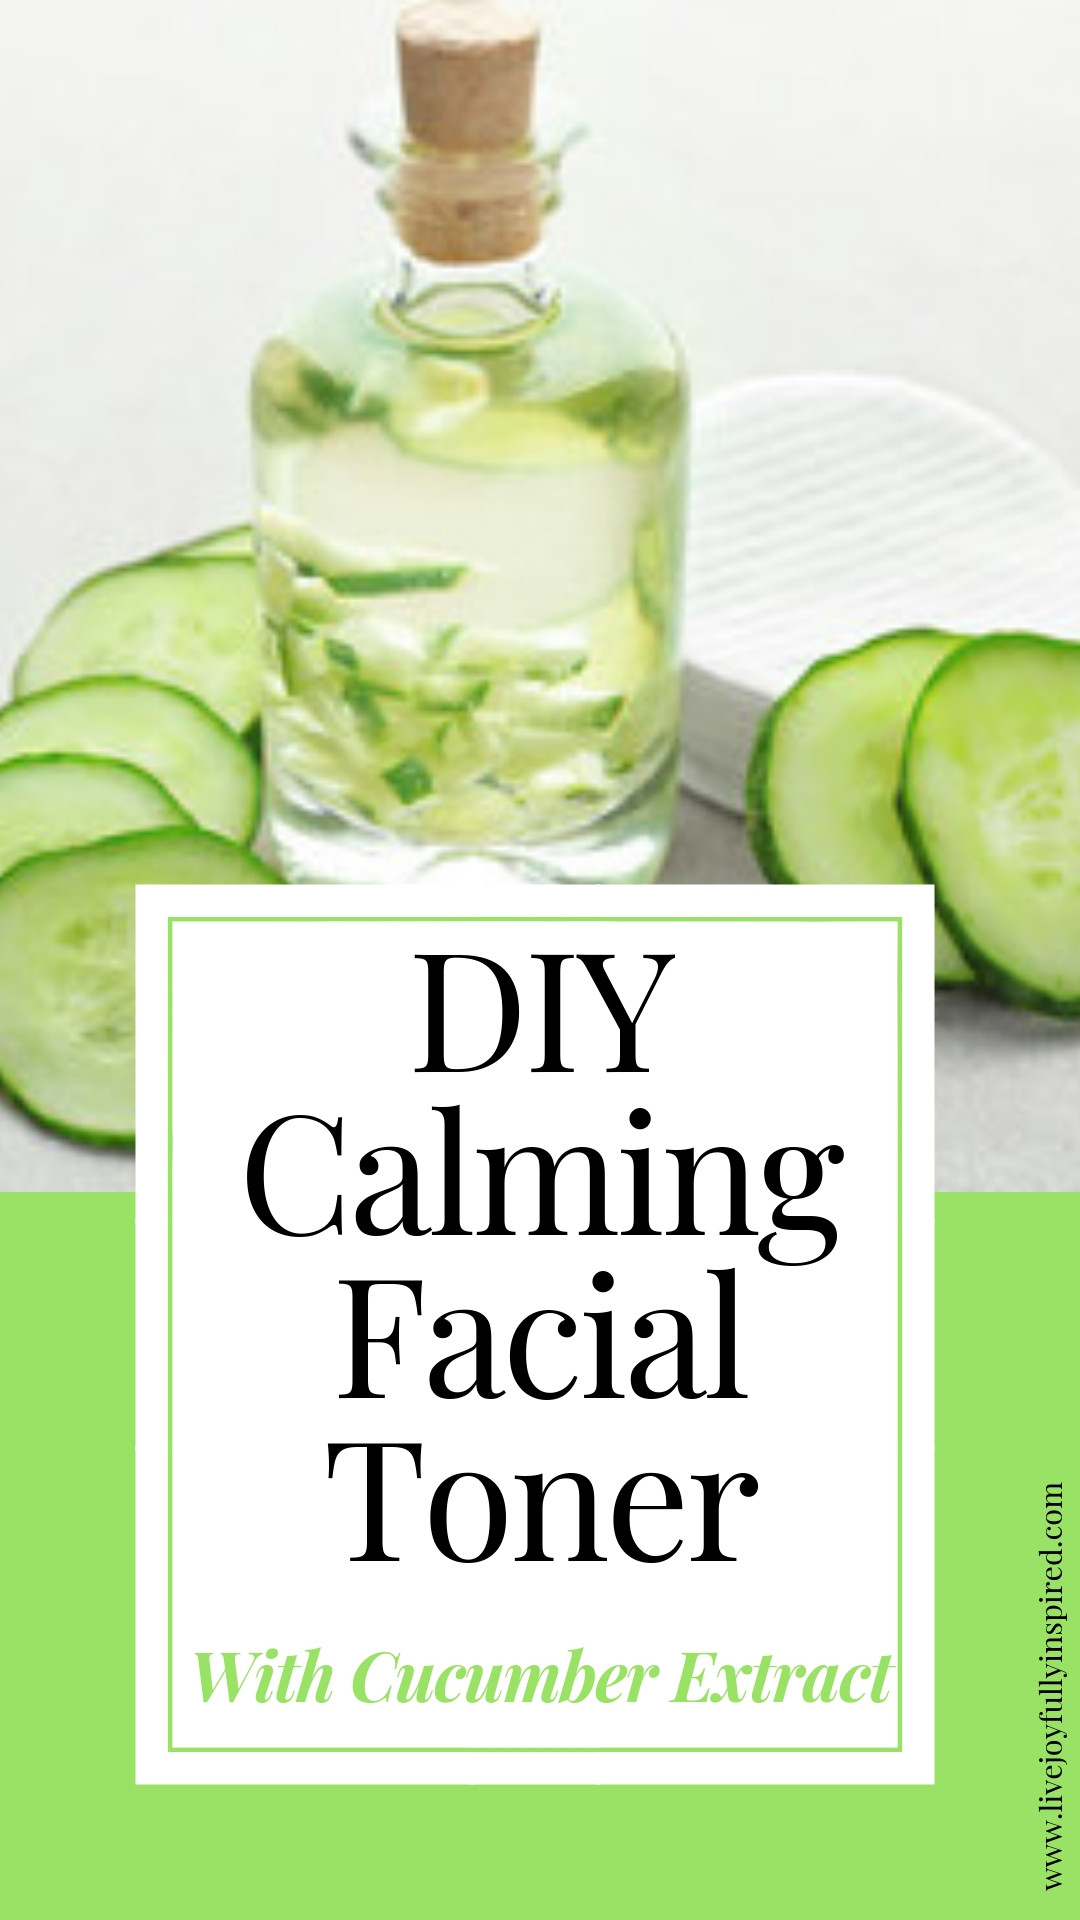 DIY Calming Facial Toner. Calm, hydrate and moisturize the skin with this easy toner. Made with all-natural ingredients to soothe and clean skin #diybeauty #cucumberextract #calmingfacialtoner